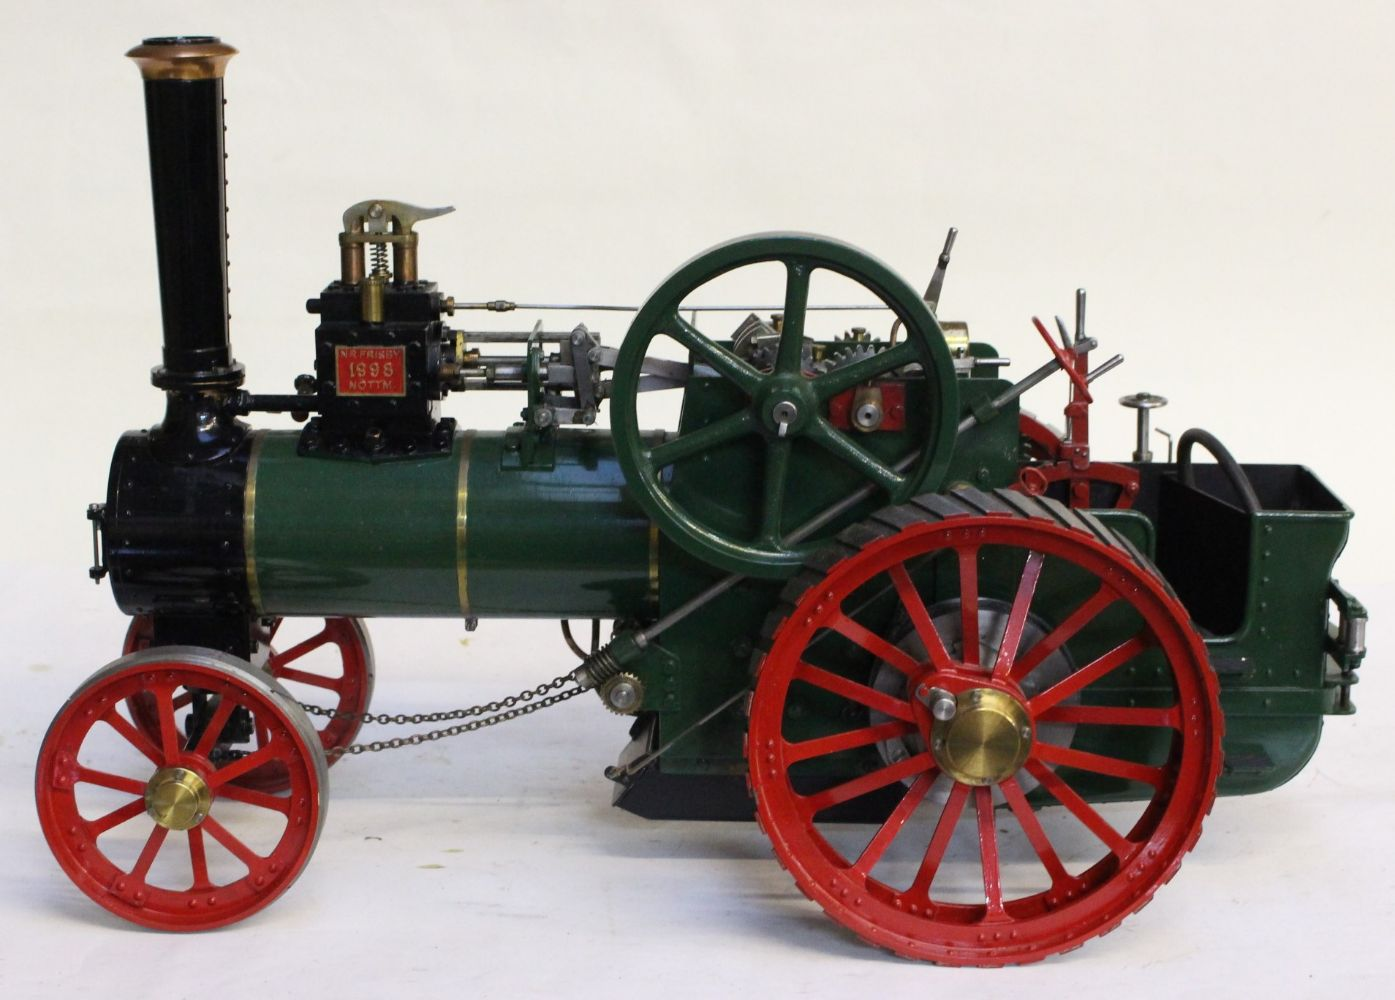 Specialist Toys, Models, Live Steam and Video Games Auction - Webcast Only - Postage and Safe Click/Collect Only